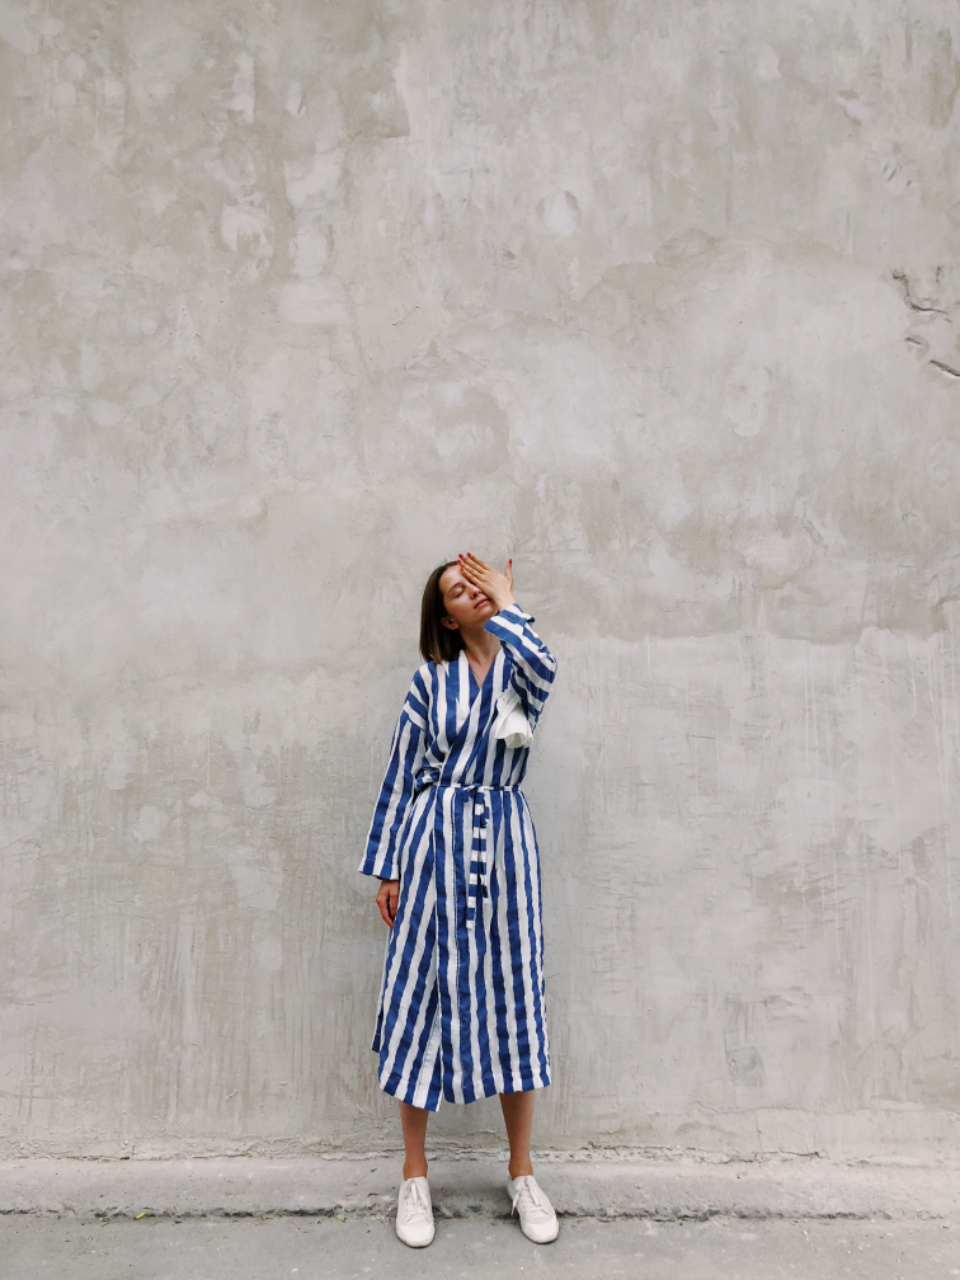 woman cover face hand stripes dress girl female people white shoes concrete wall minimal street